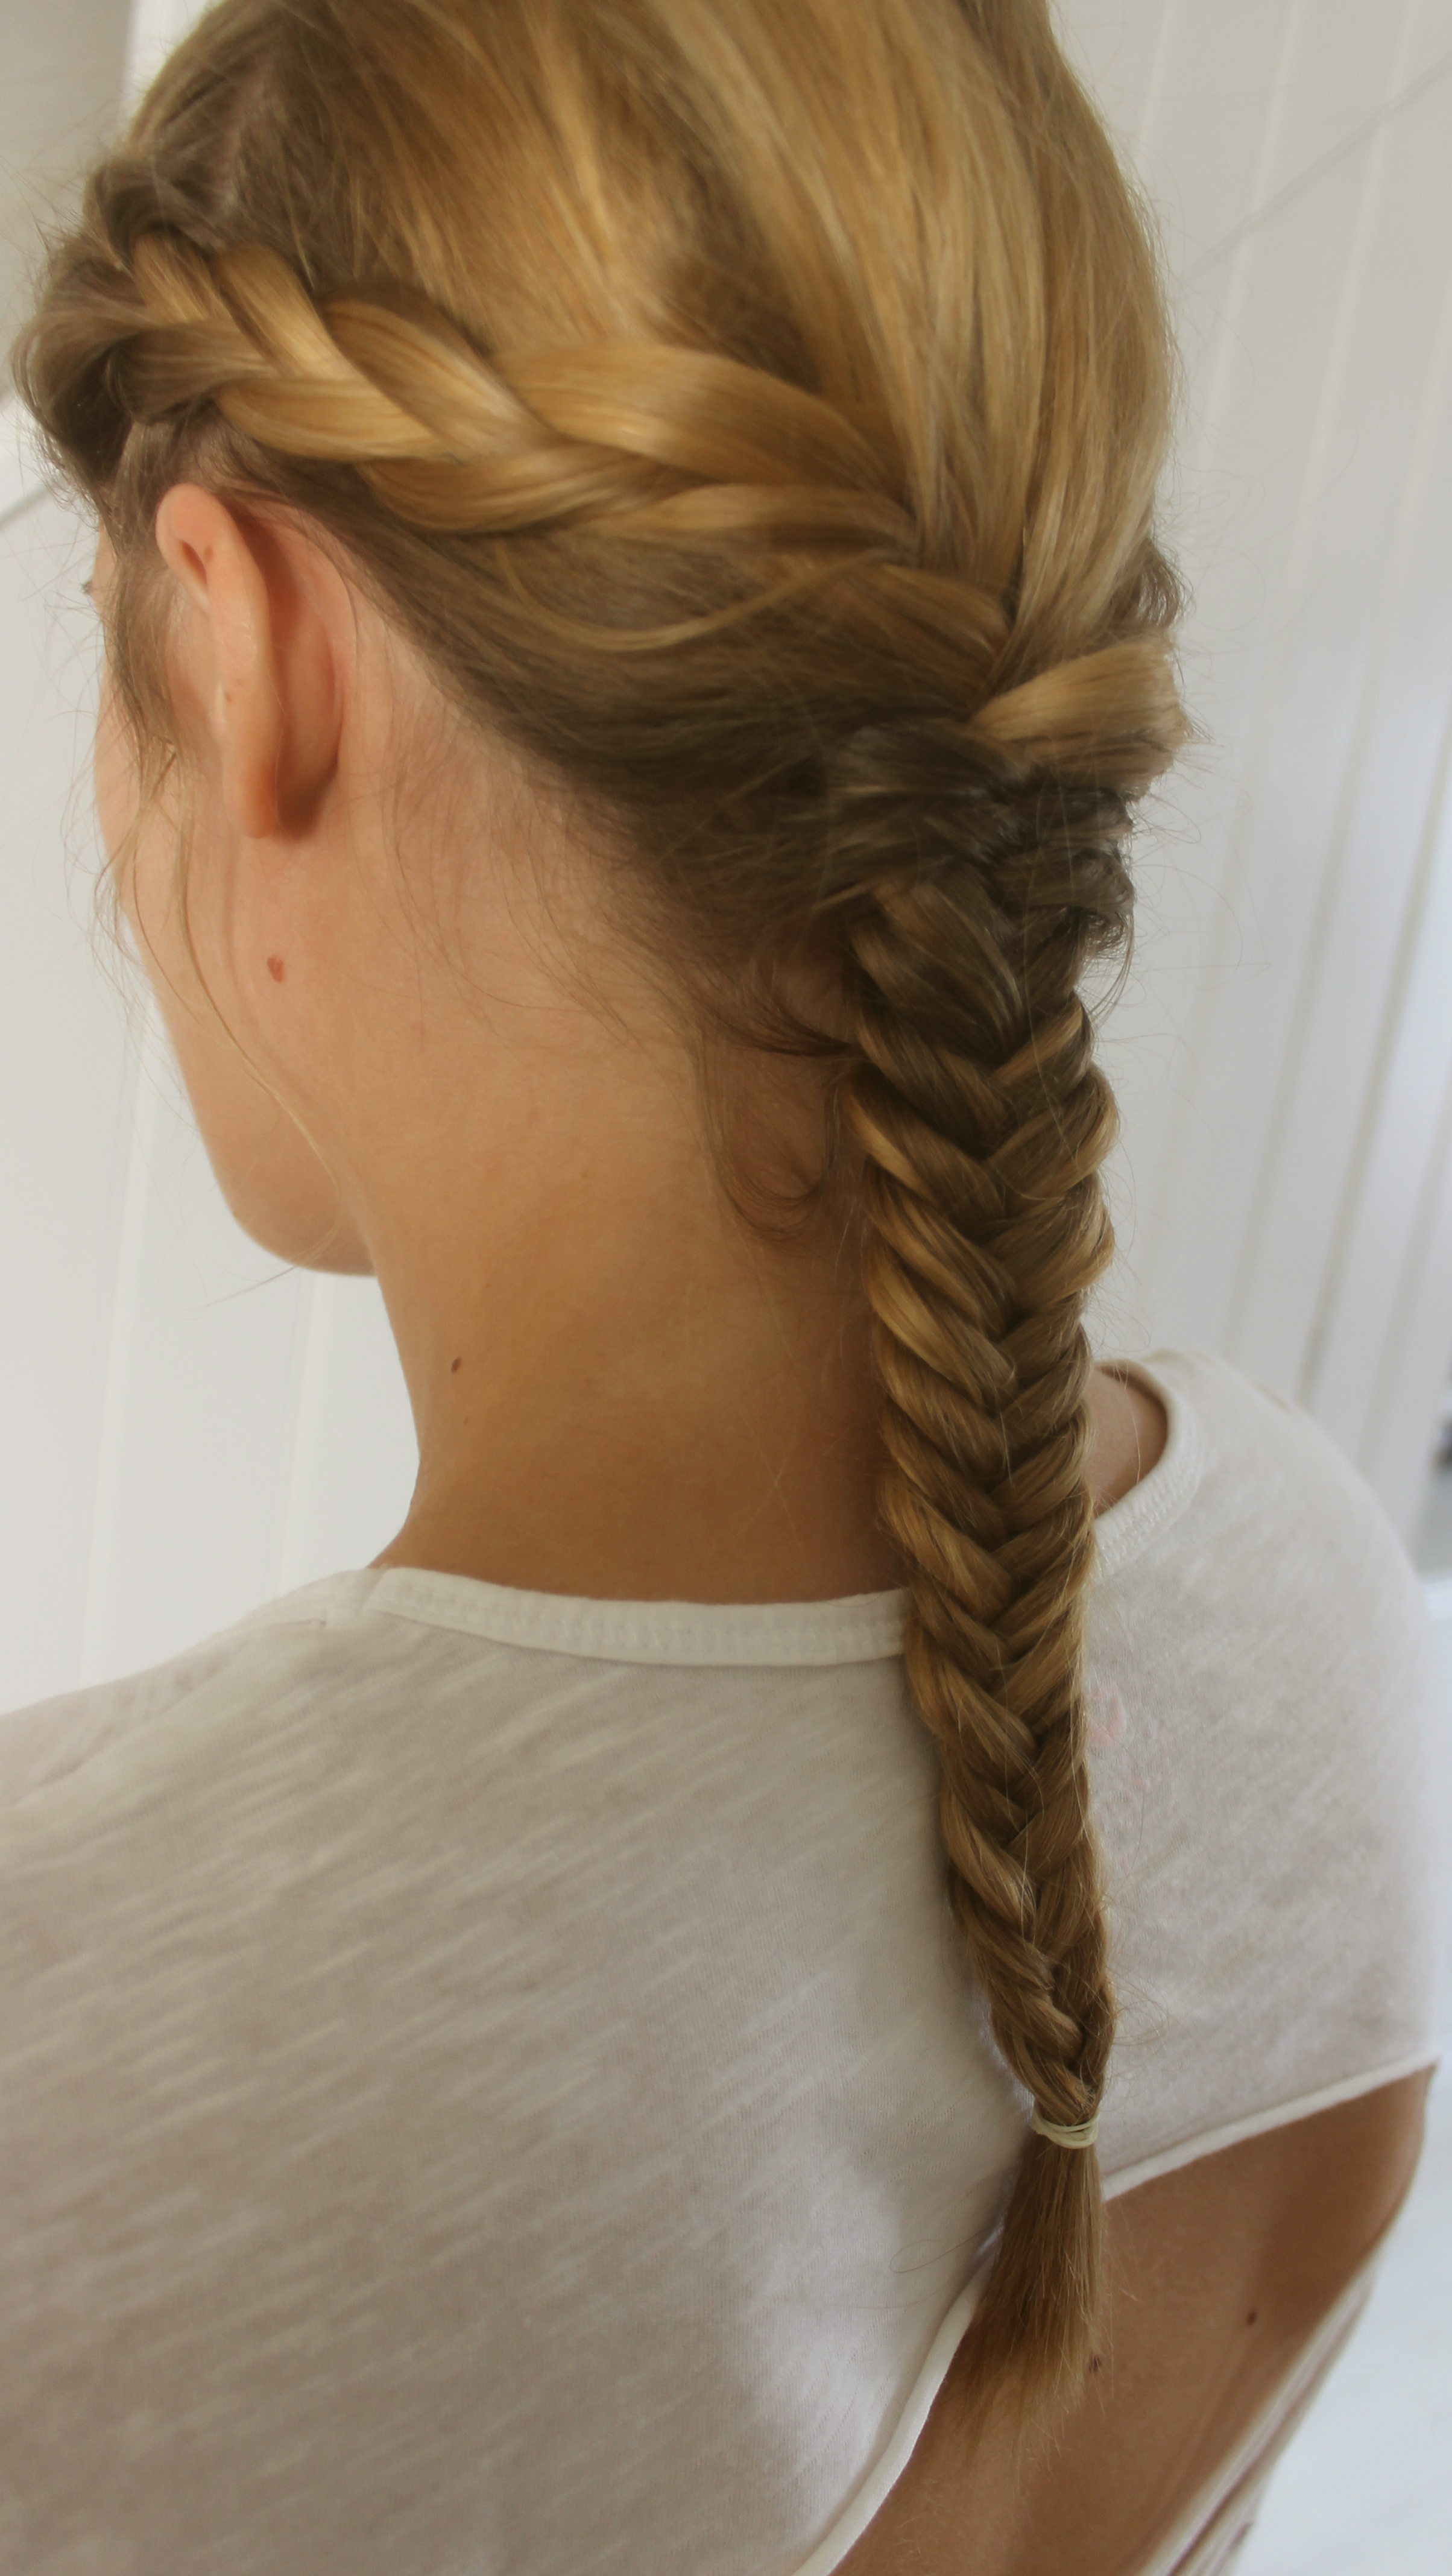 Coiffure Tresse Diademe Coiffure Archives Prettylittletruth Blog Lifestyle